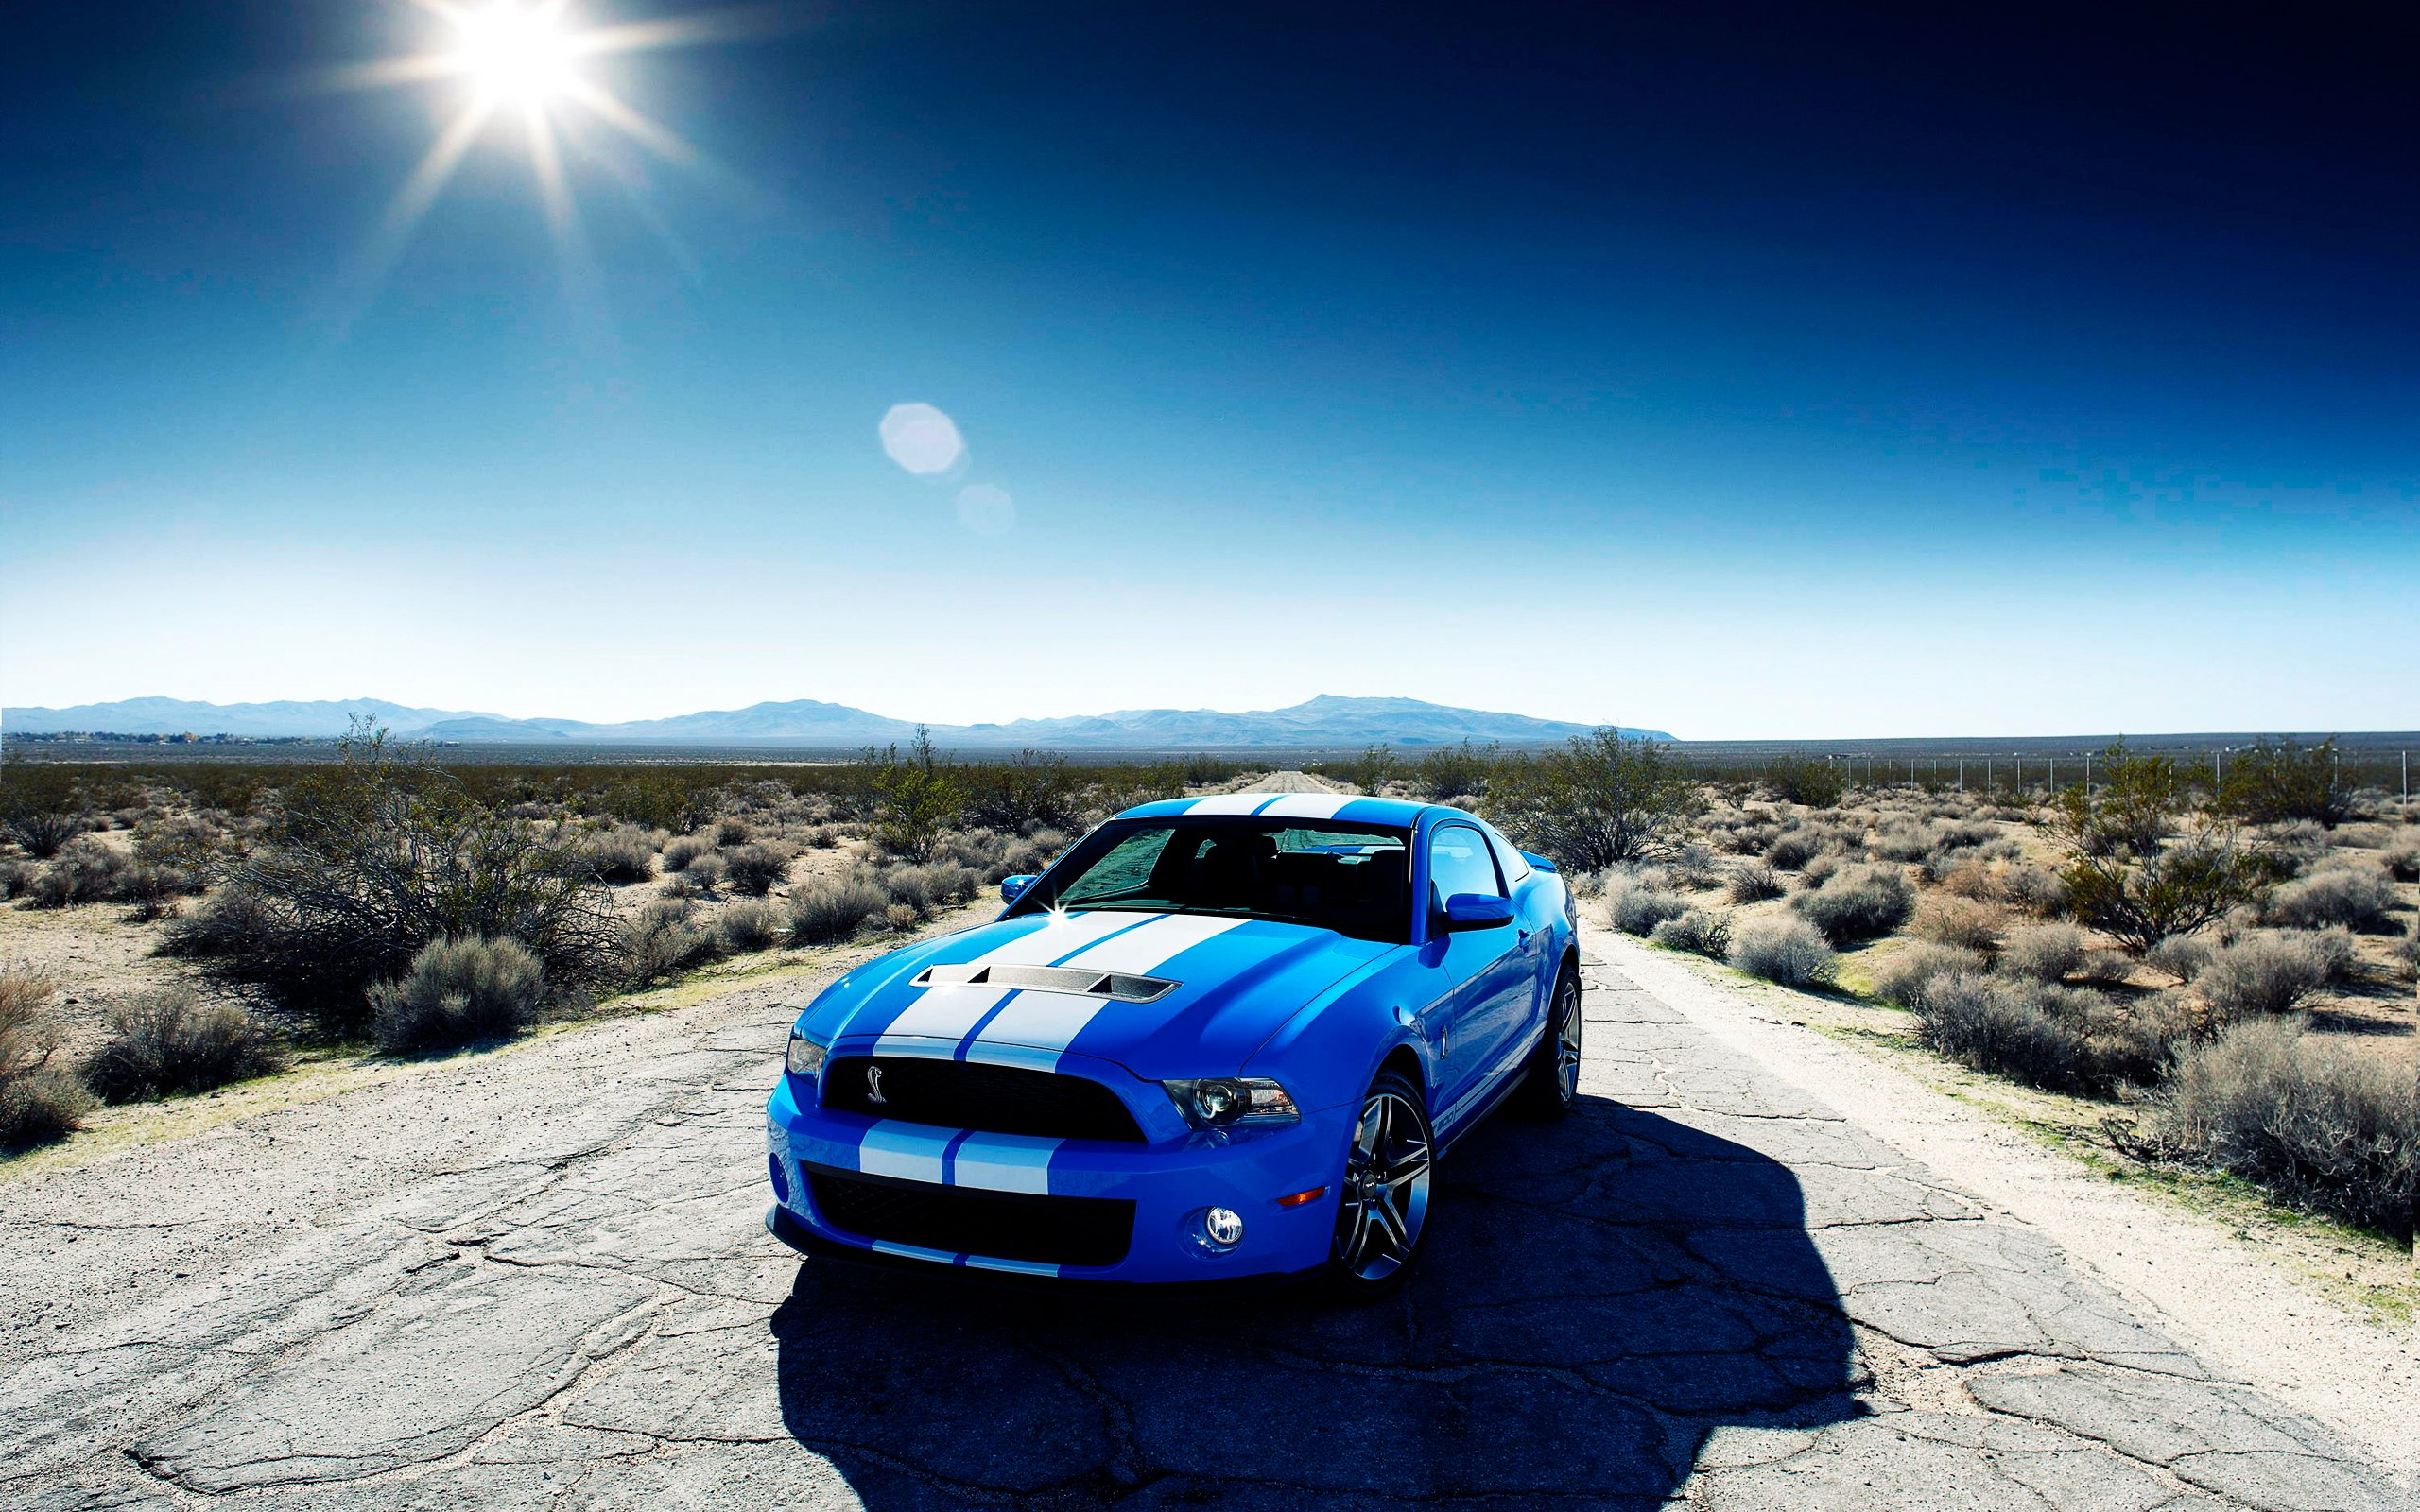 Hd wallpapers of cars - Ford Shelby Gt500 Car Wallpapers Hd Wallpapers